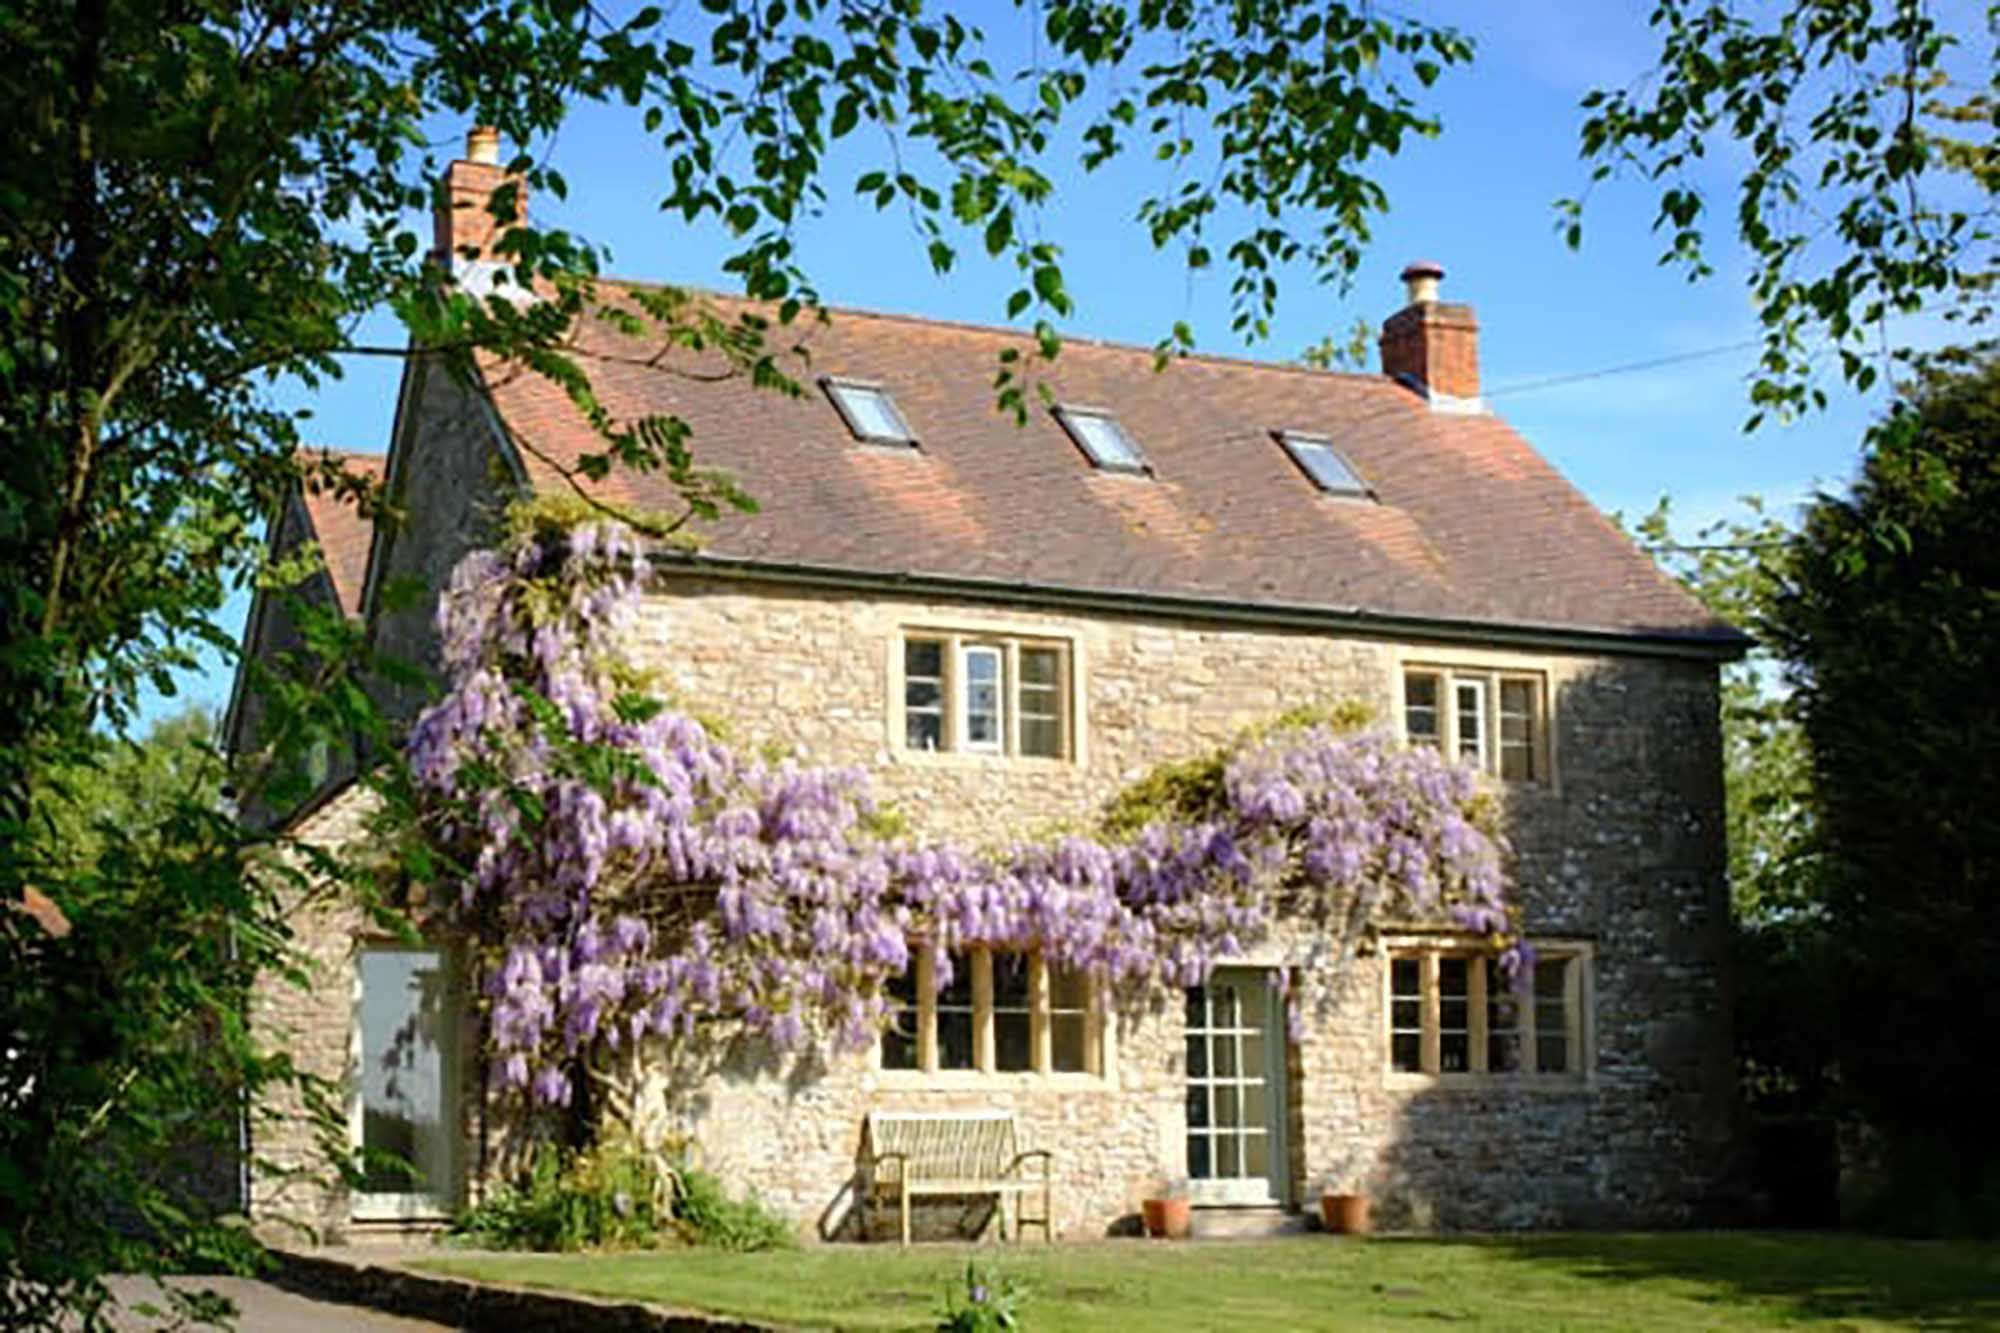 Stunning 6 bed farmhouse with annexe and land